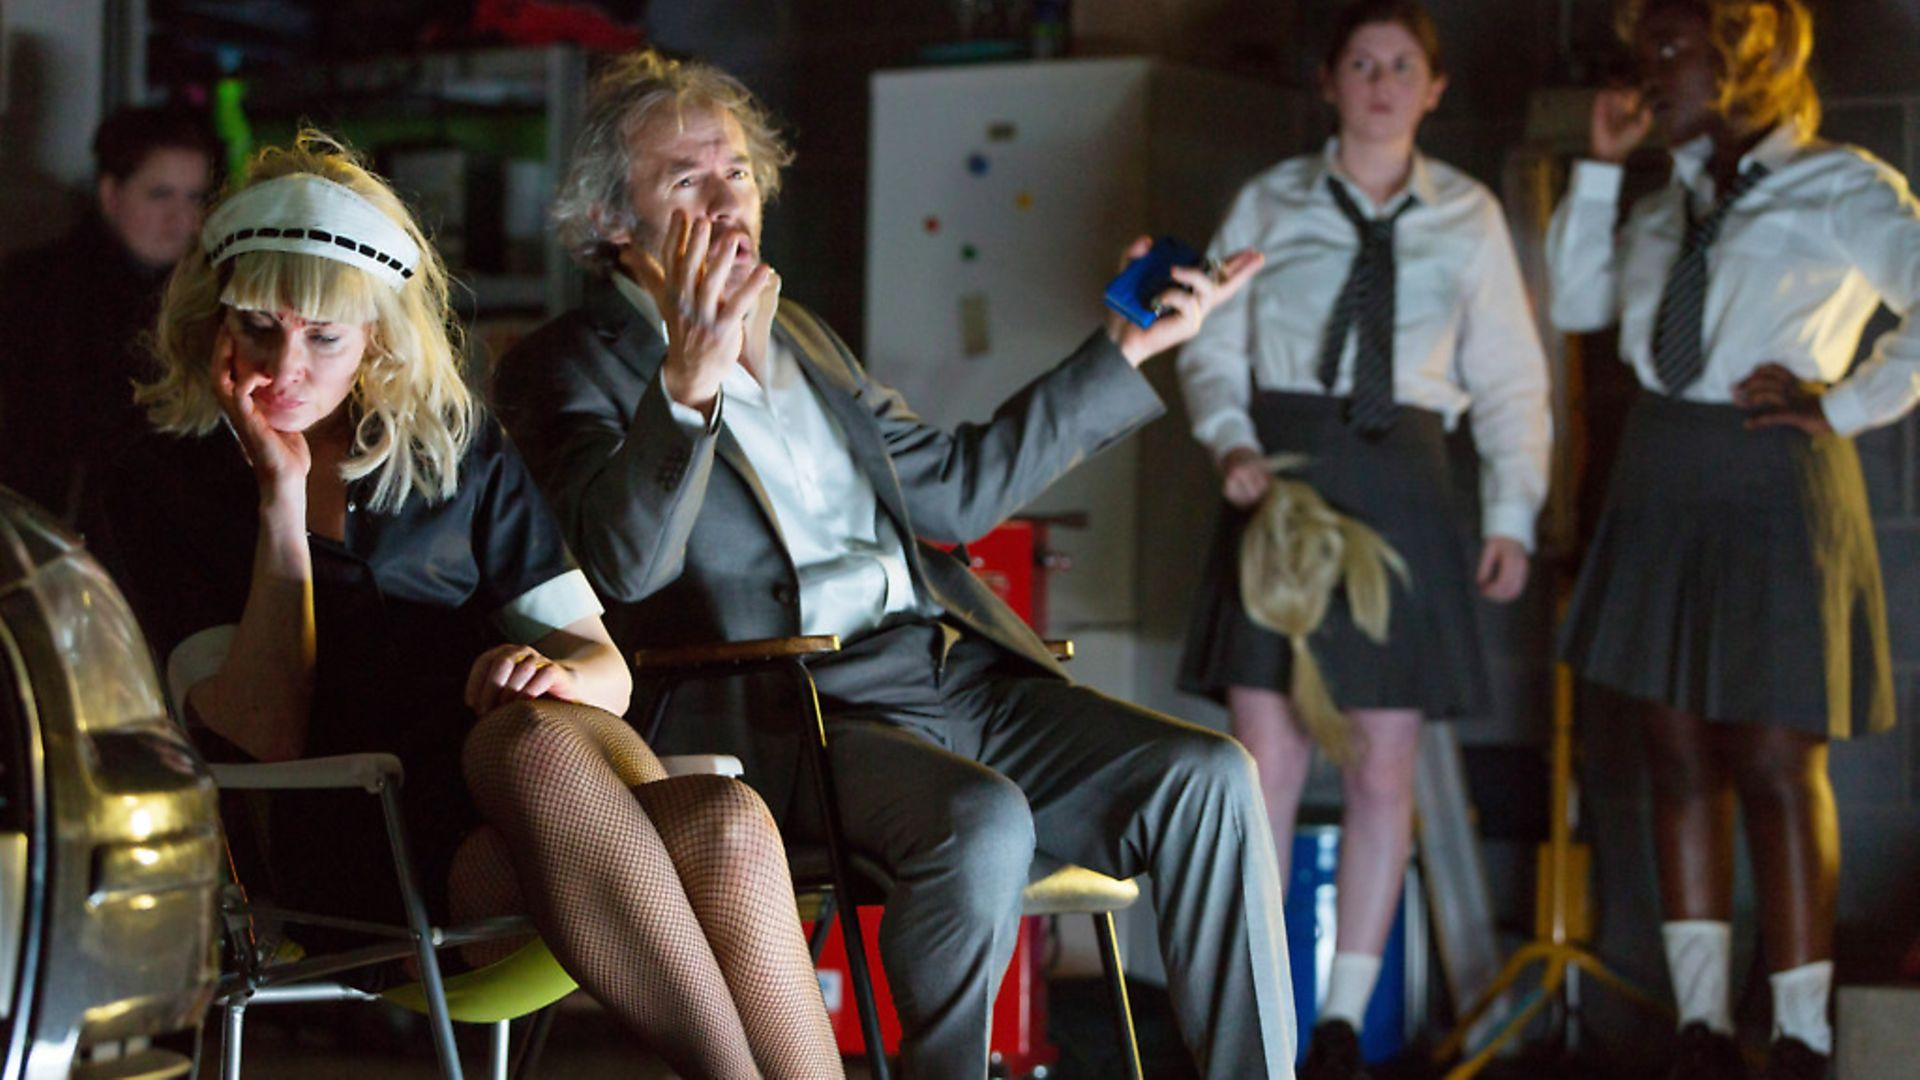 Cate Blanchett and Stephen Dillane in When We Have Sufficiently Tortured Each Other. Picture: Stephen Cummiskey 2019 - Credit: Archant